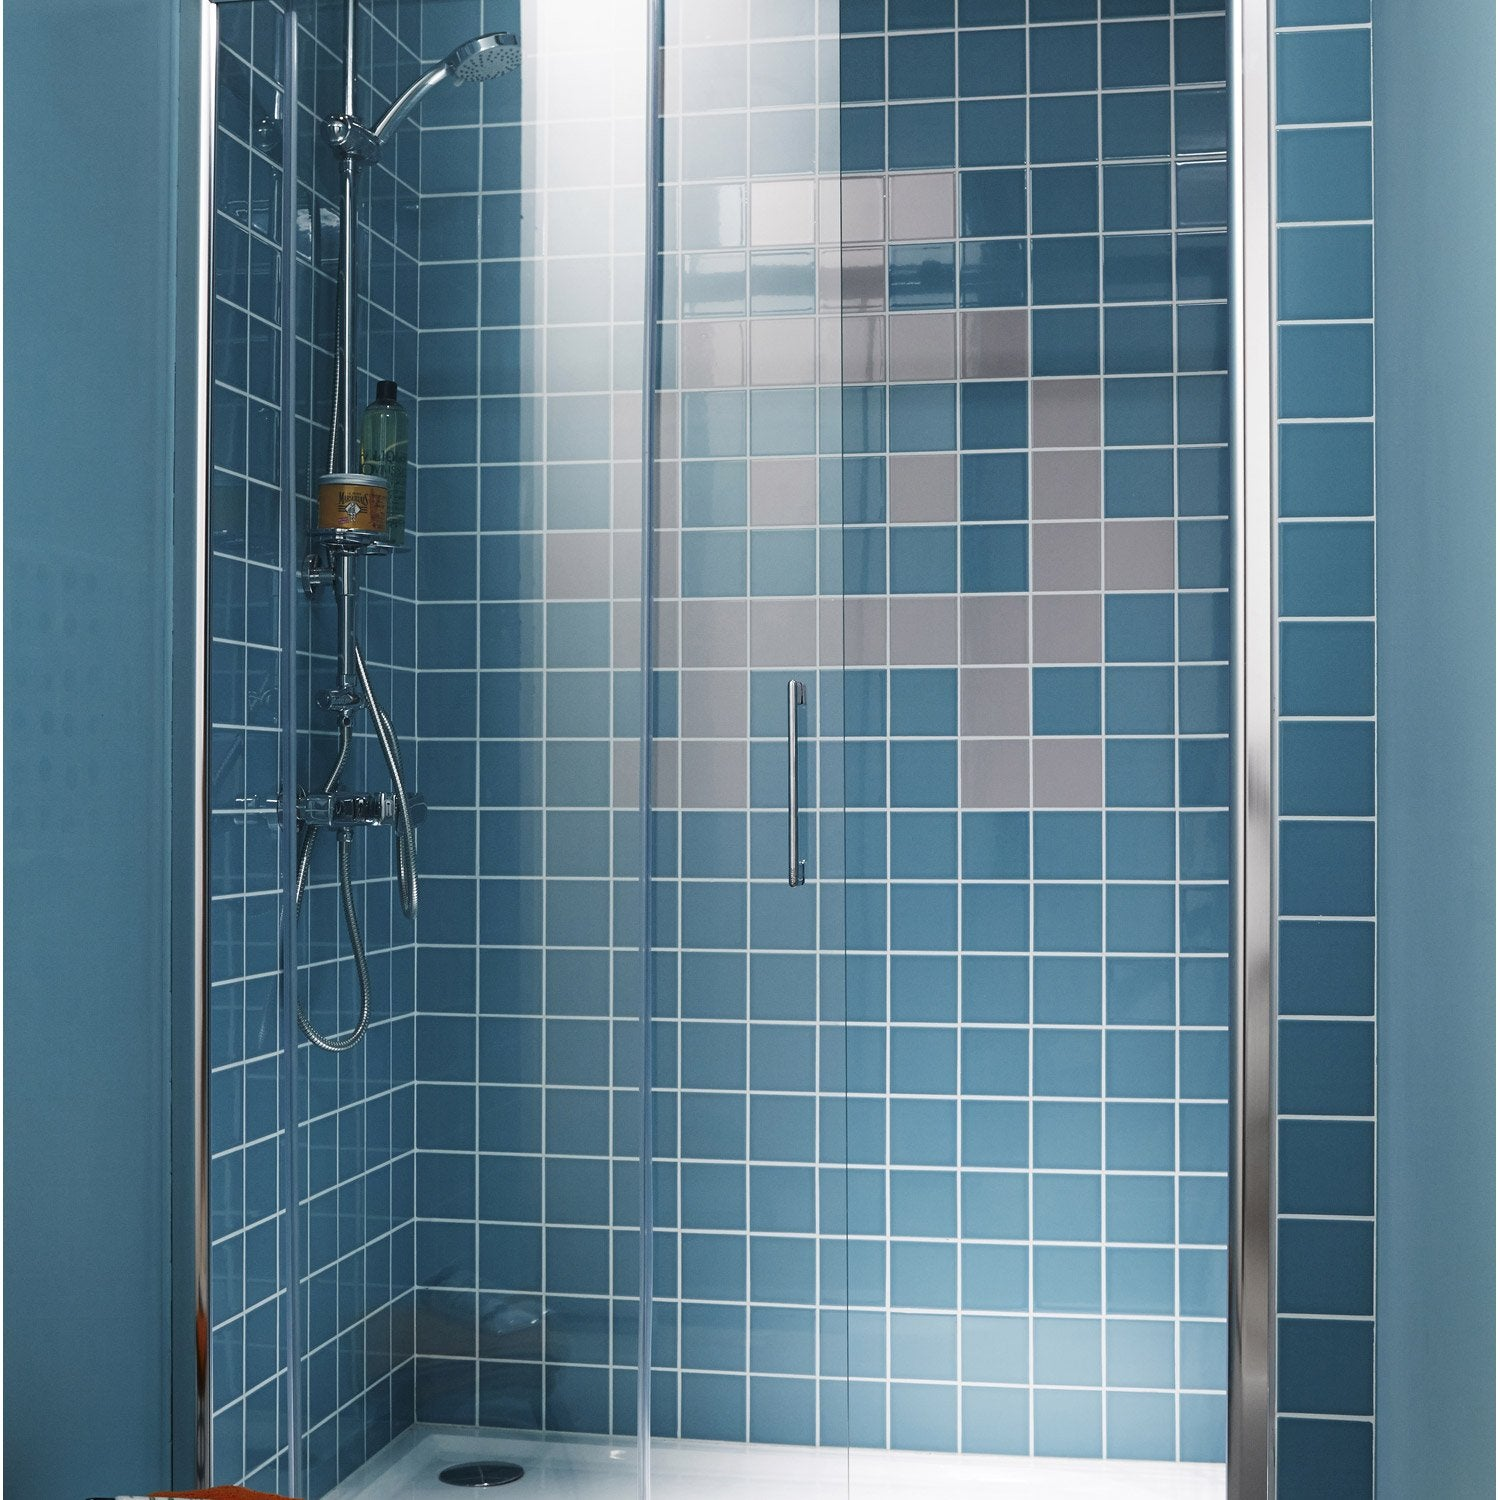 Porte de douche coulissante transparent remix2 leroy merlin - Porte de douche reglable ...